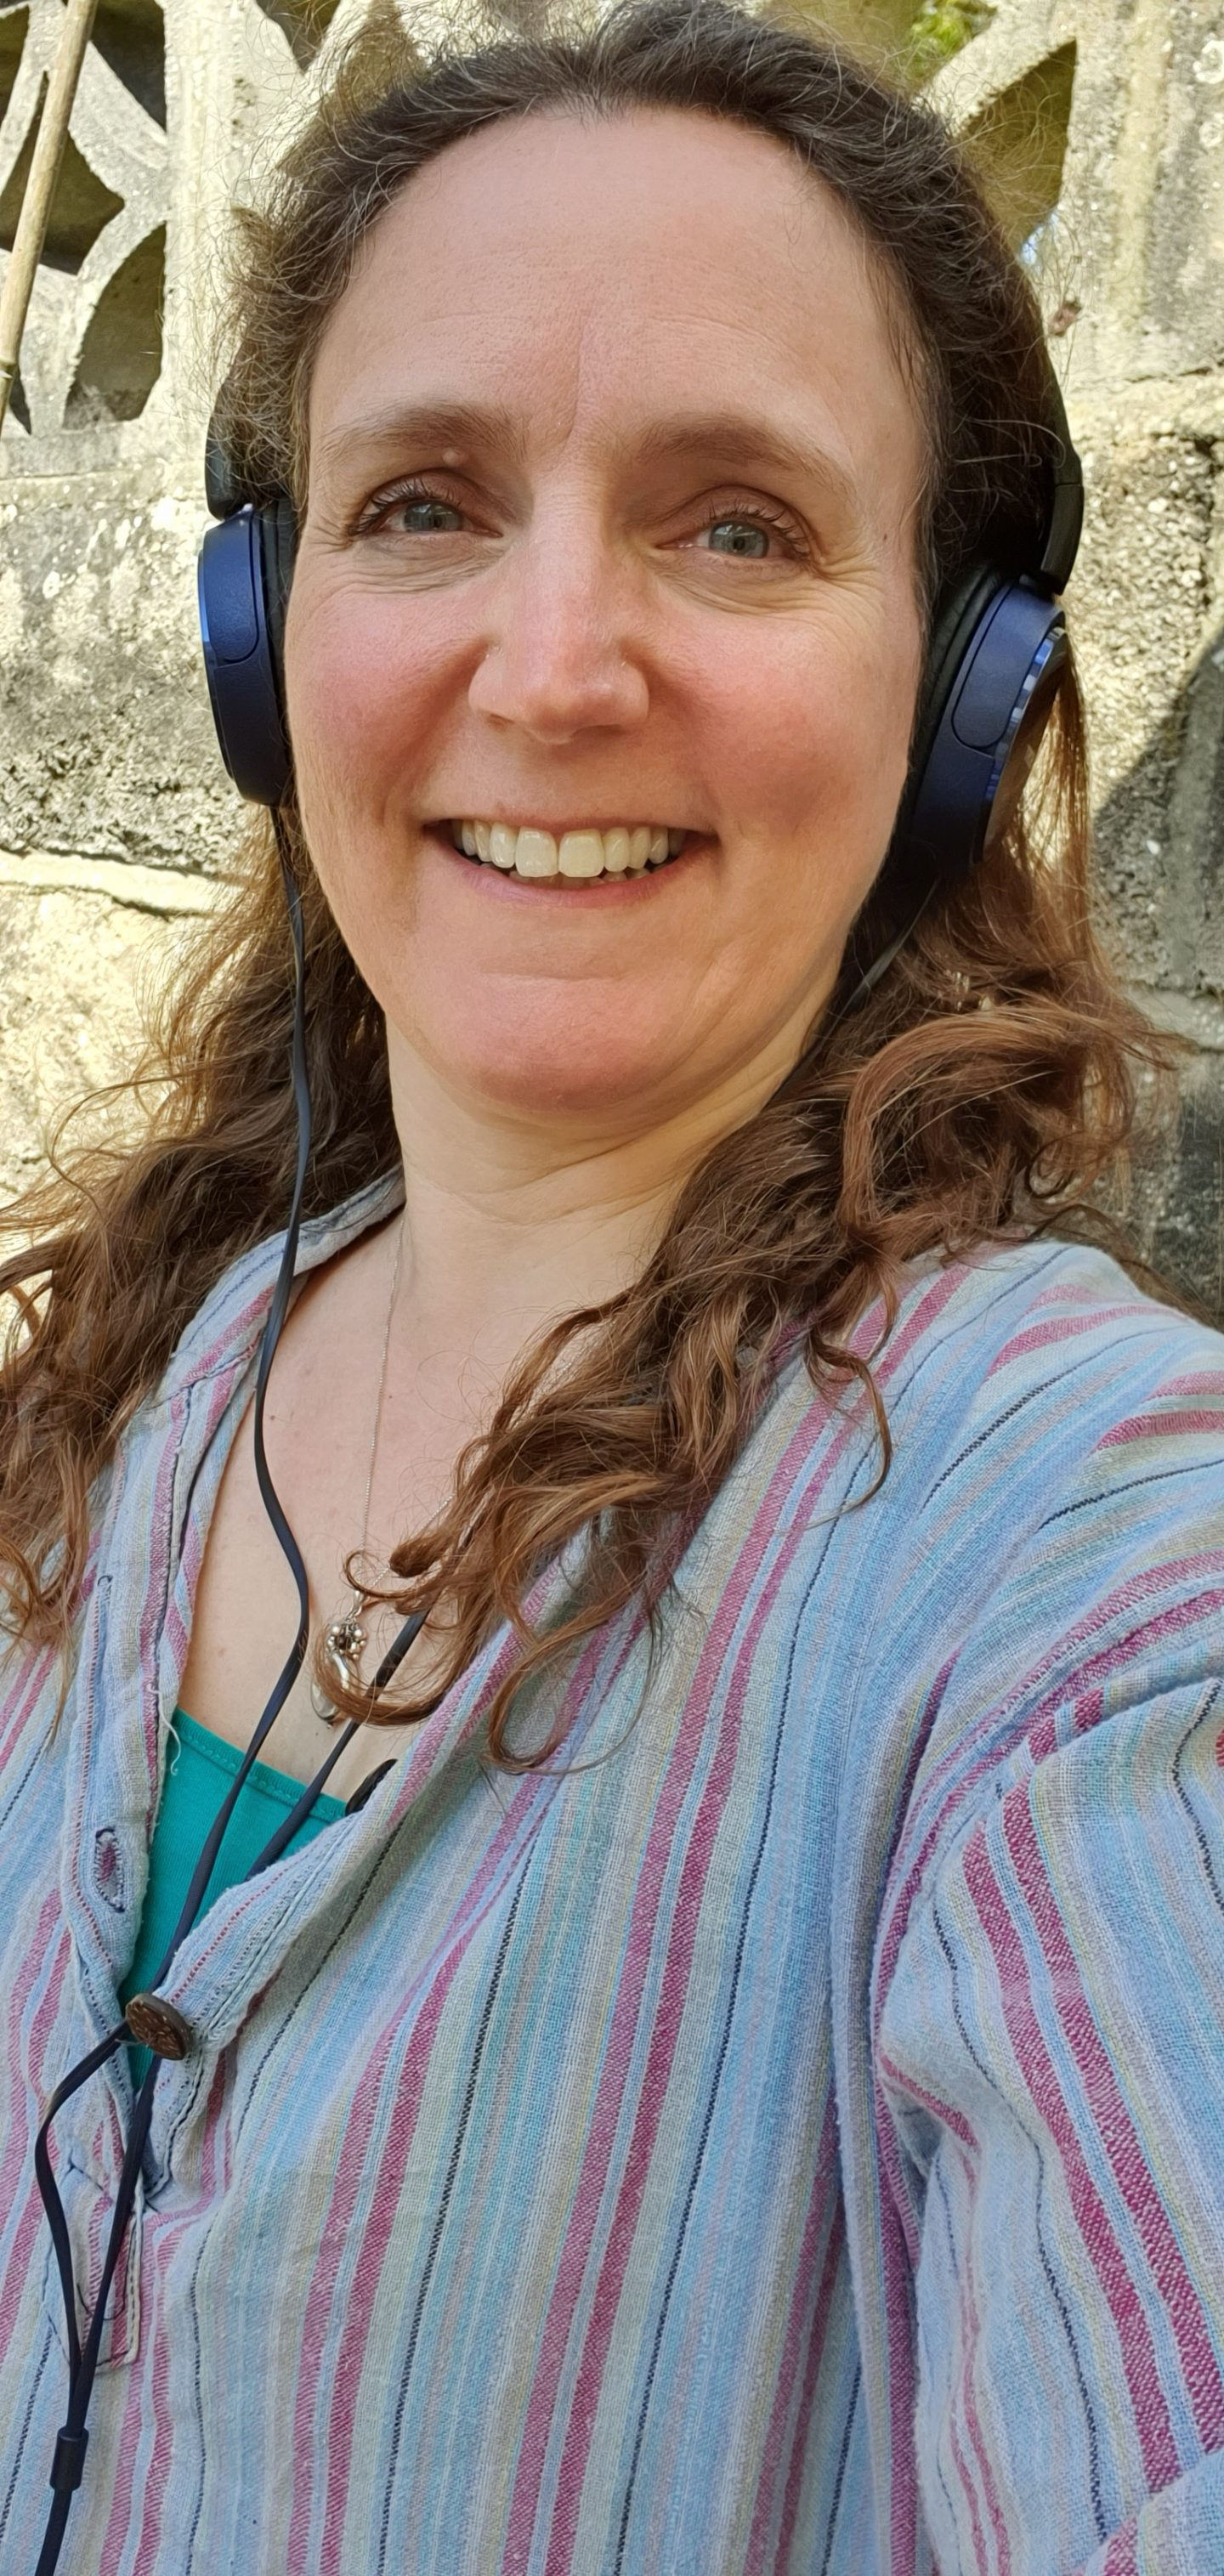 Woman standing in front of a wall smiling, wearing headphones